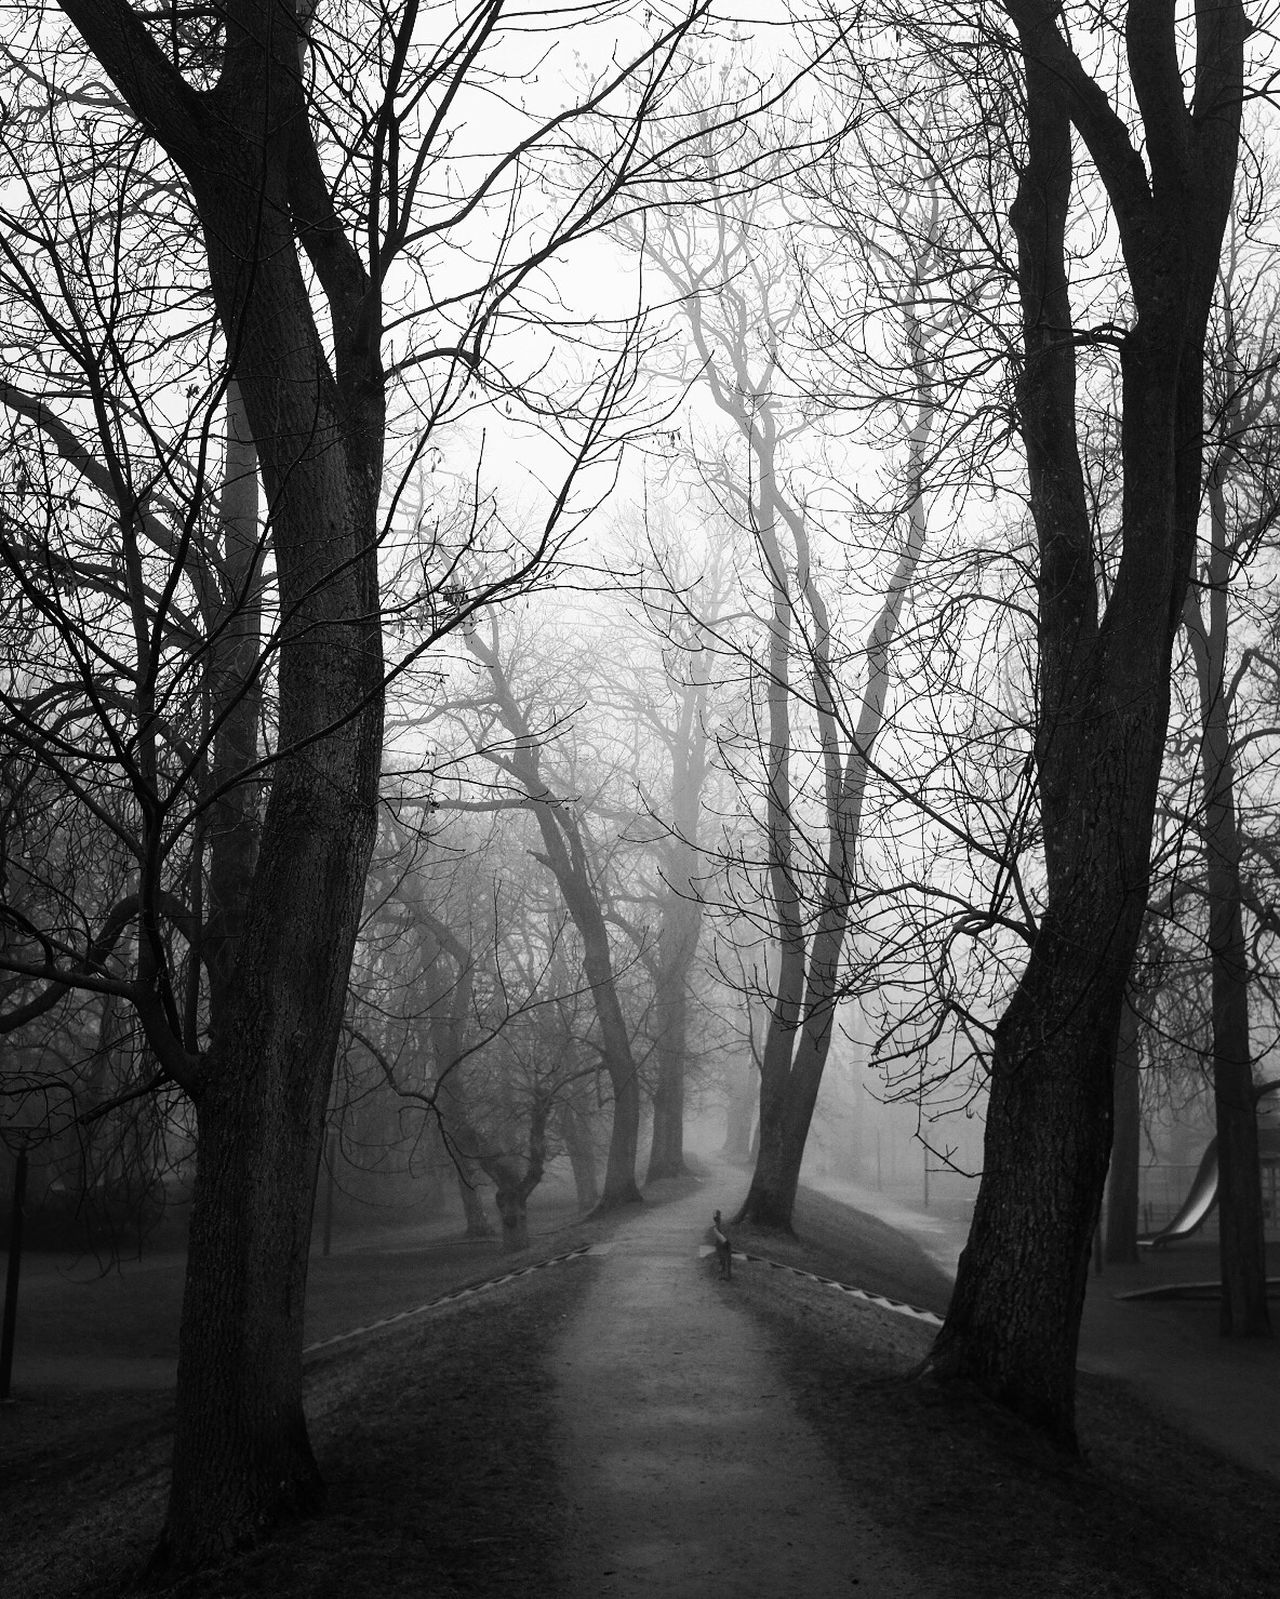 Tree Bare Tree Tranquility Scenics Beauty In Nature Fog No People Vanishing Point Monochrome Street Photography Black And White Silhouette EyeEm Best Shots - Black + White Tranquility